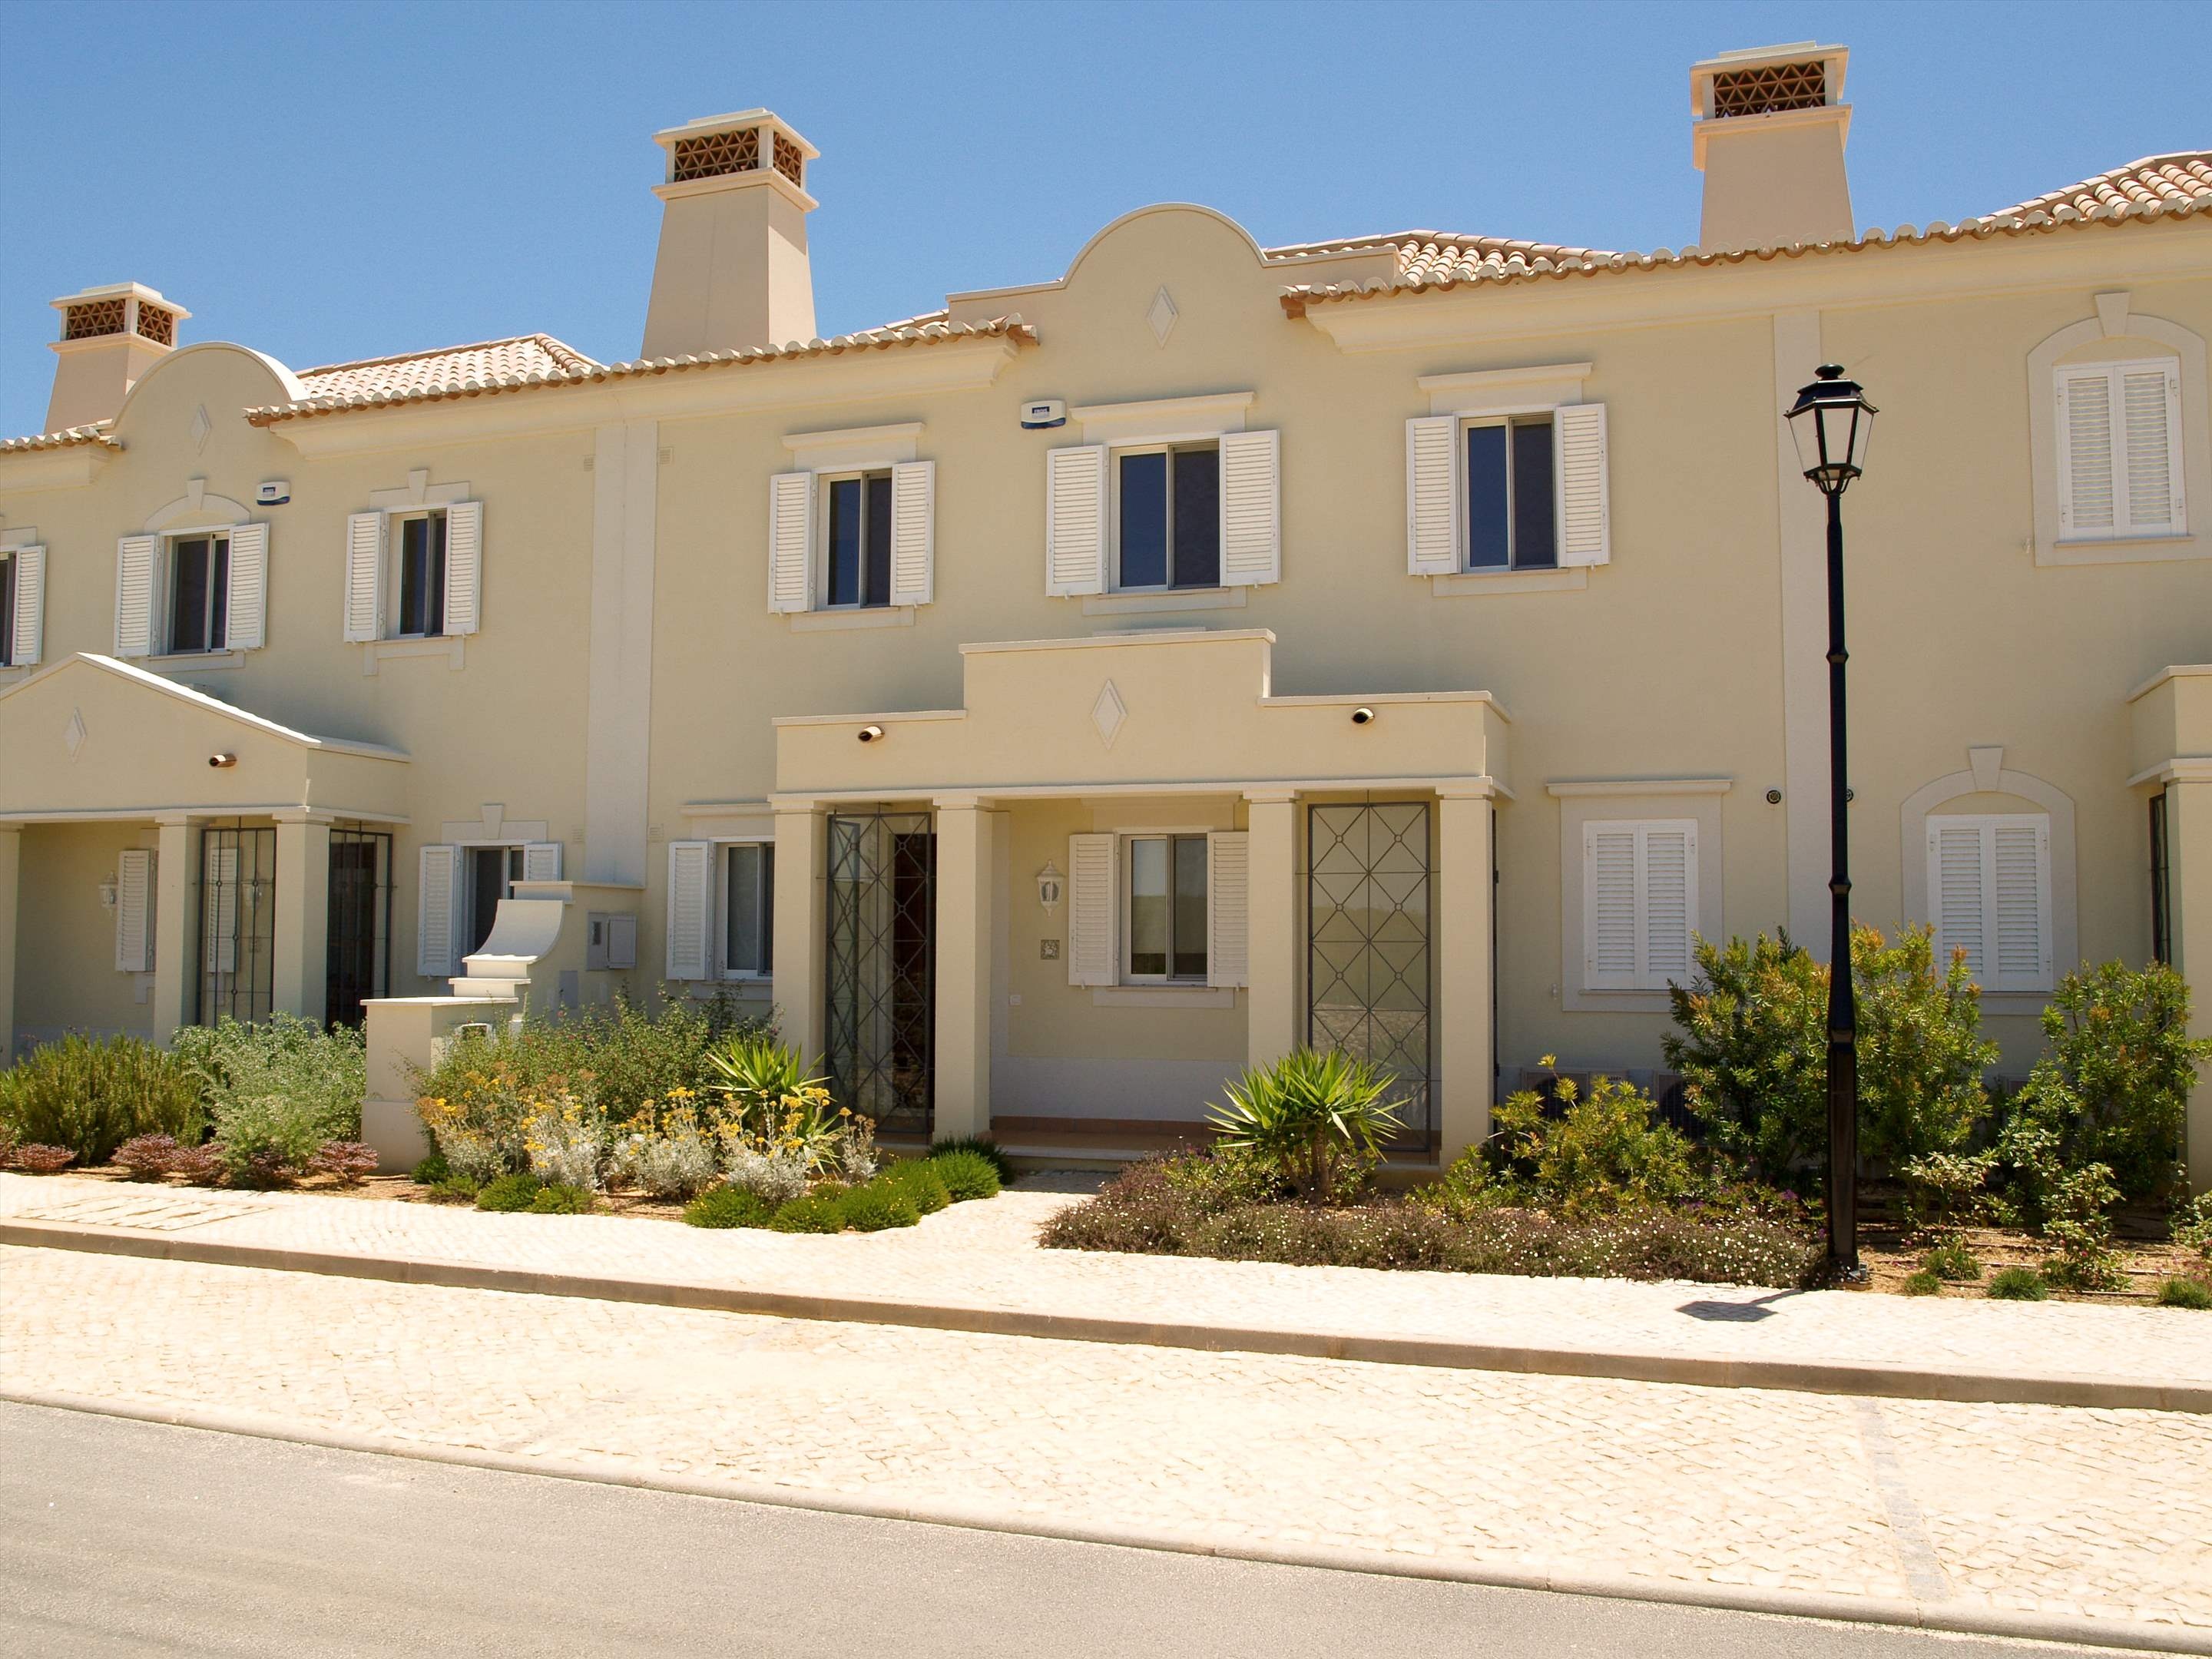 Martinhal Vilas Mimosa Two Bedroom, 2 bedroom villa in Martinhal Sagres, Algarve Photo #4